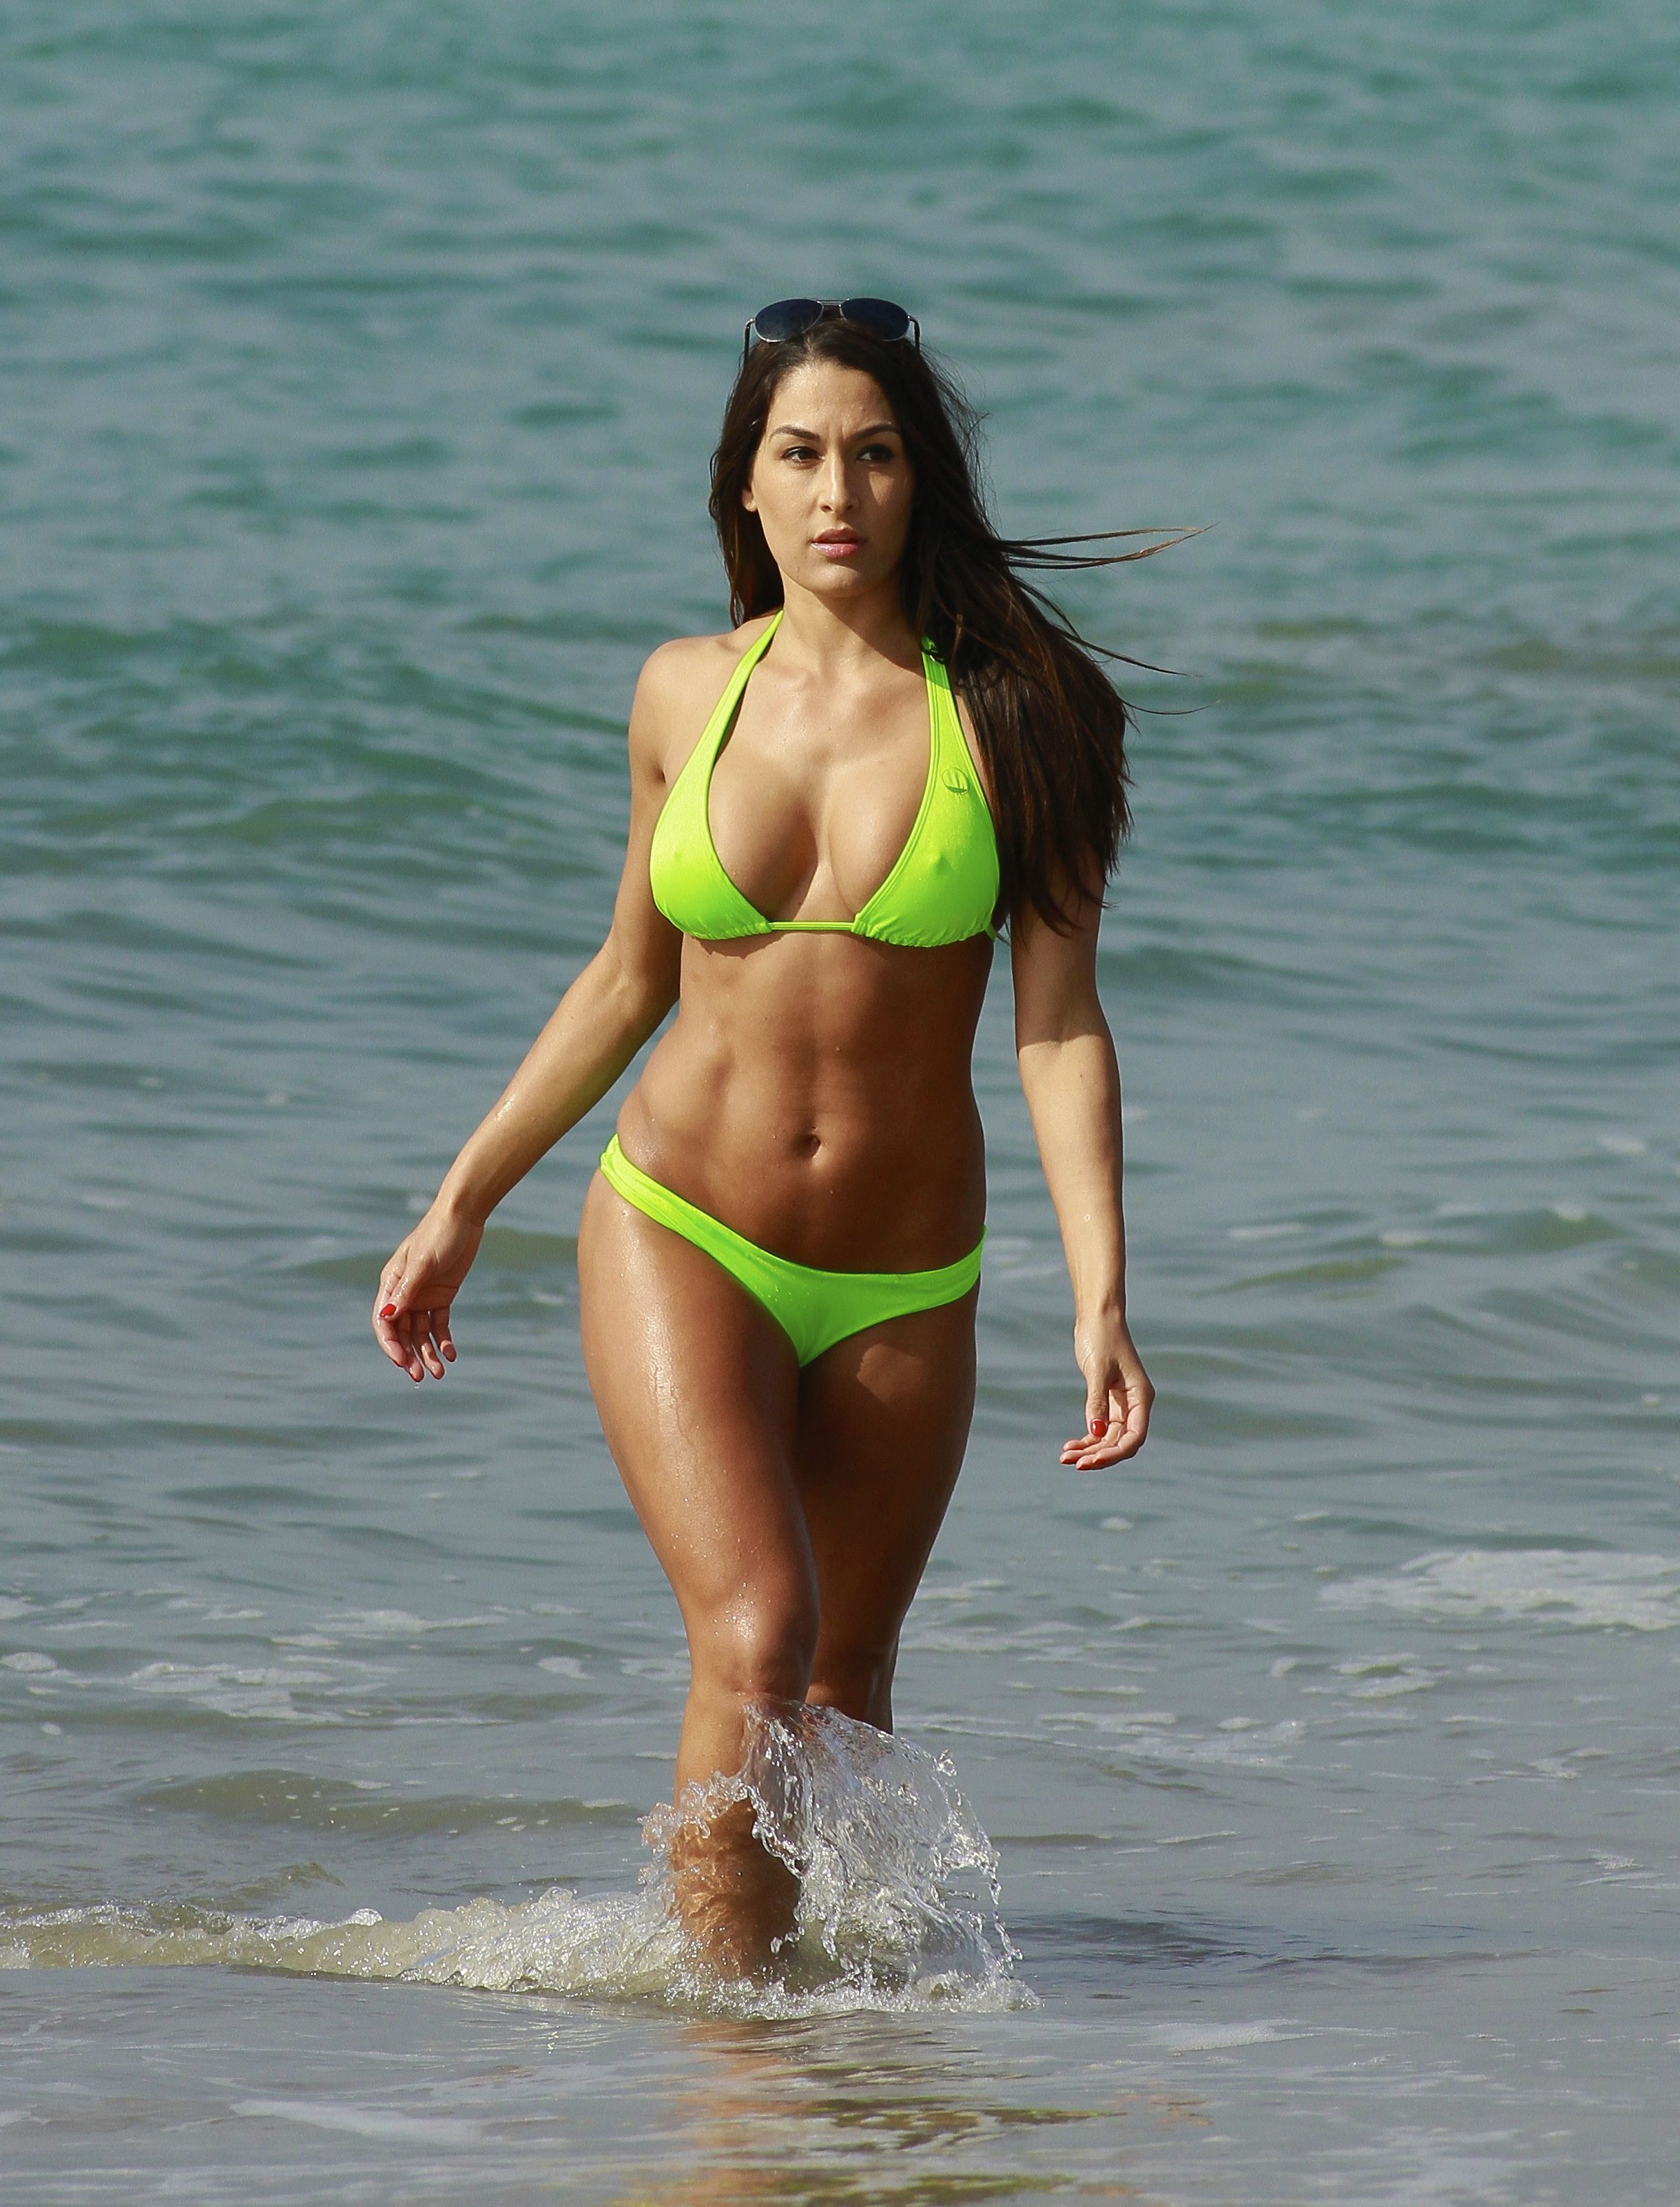 Commit WWWE Nikki Bella xxx phots final, sorry